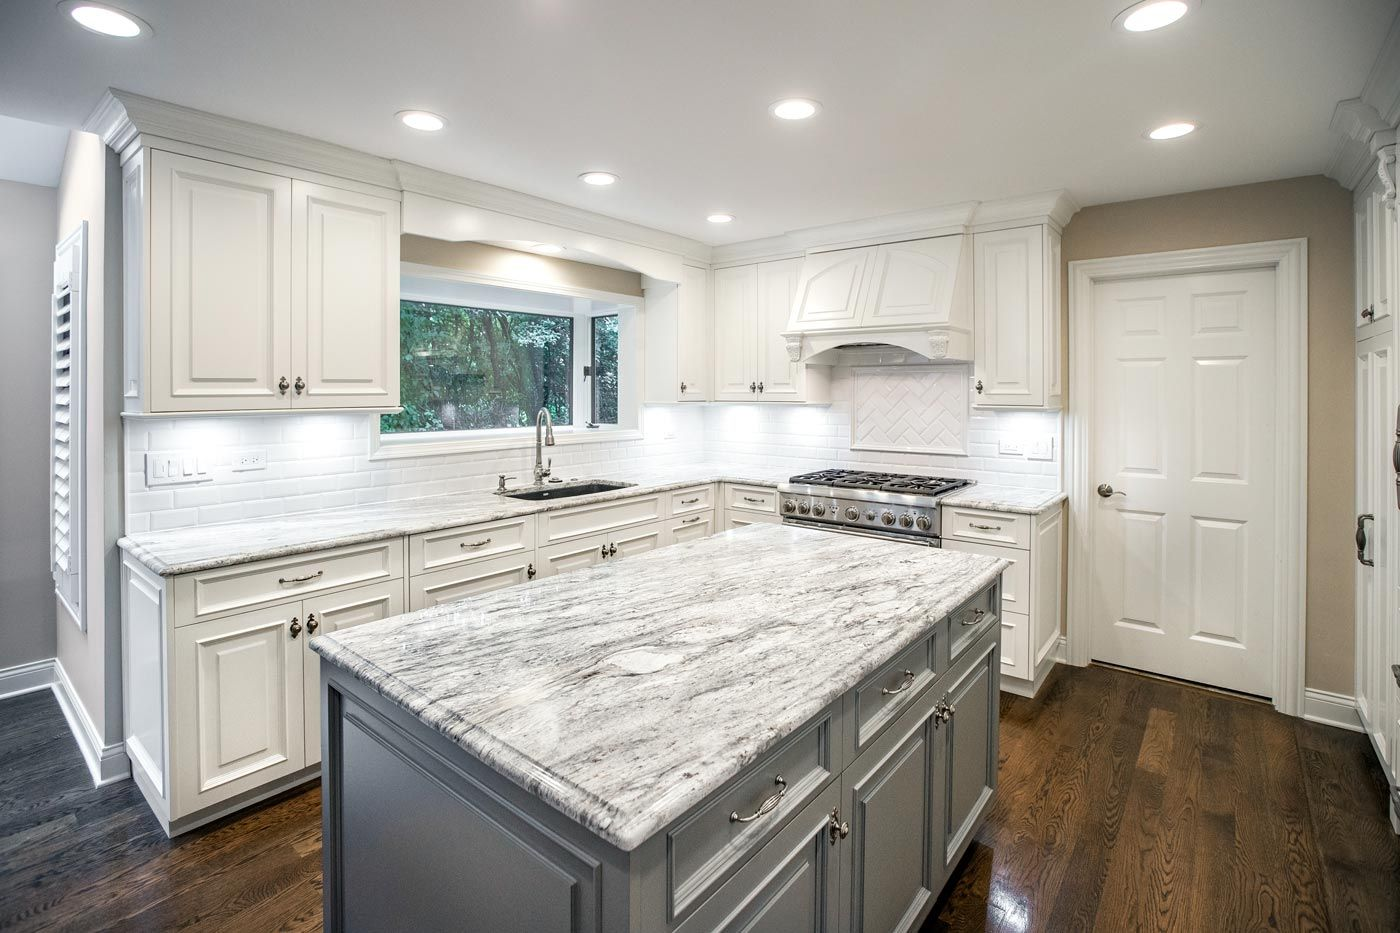 Kitchen And Bathroom Remodeling In Chicago Linly Designs Kitchen Bathroom Remodel Small Kitchen Layouts Kitchen Cabinets Decor